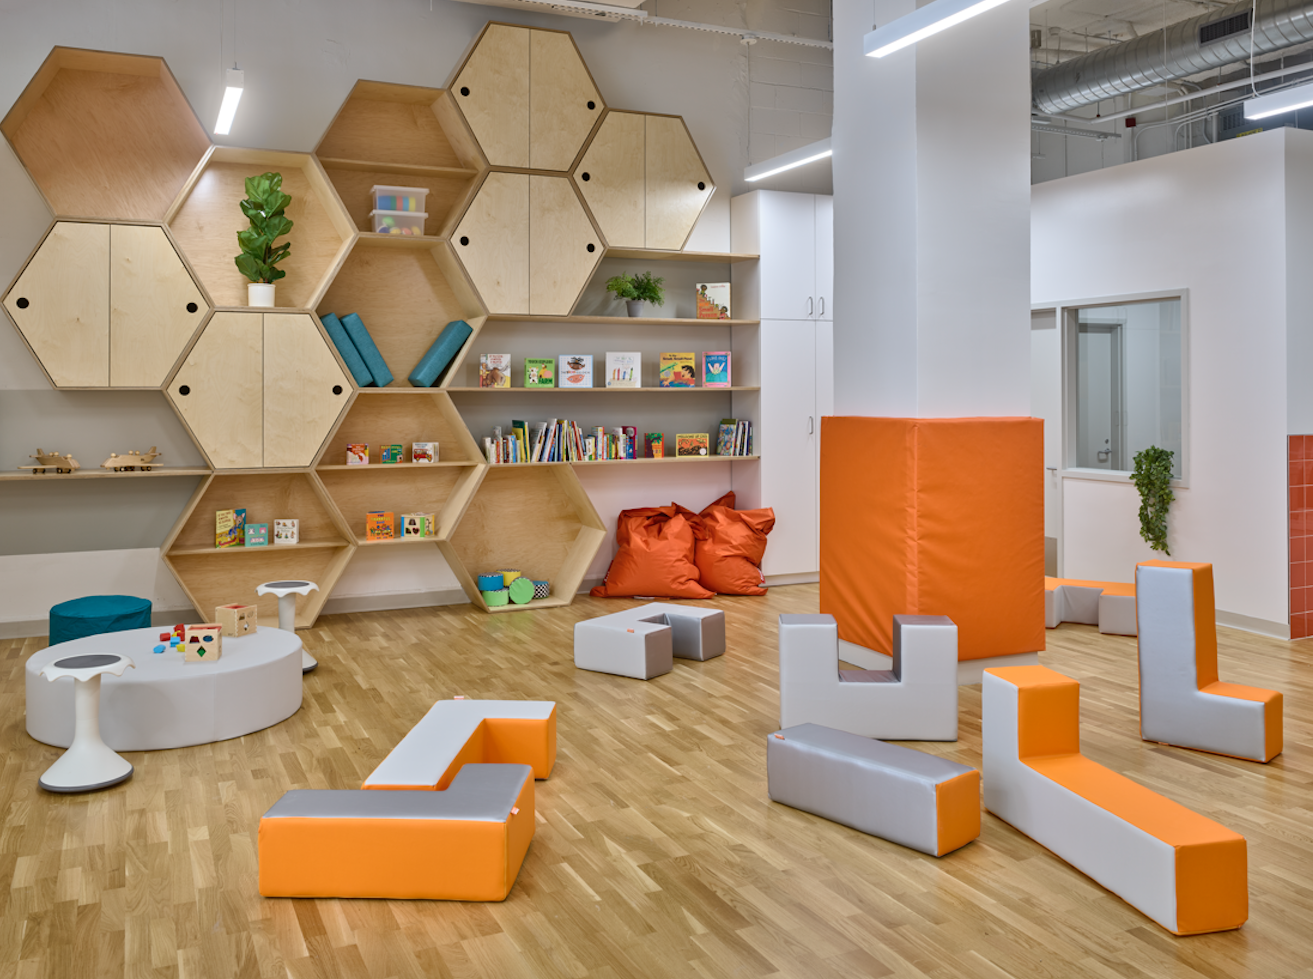 The interior of a daycare with orange bean baggies, cubbies filled with books, and plants.